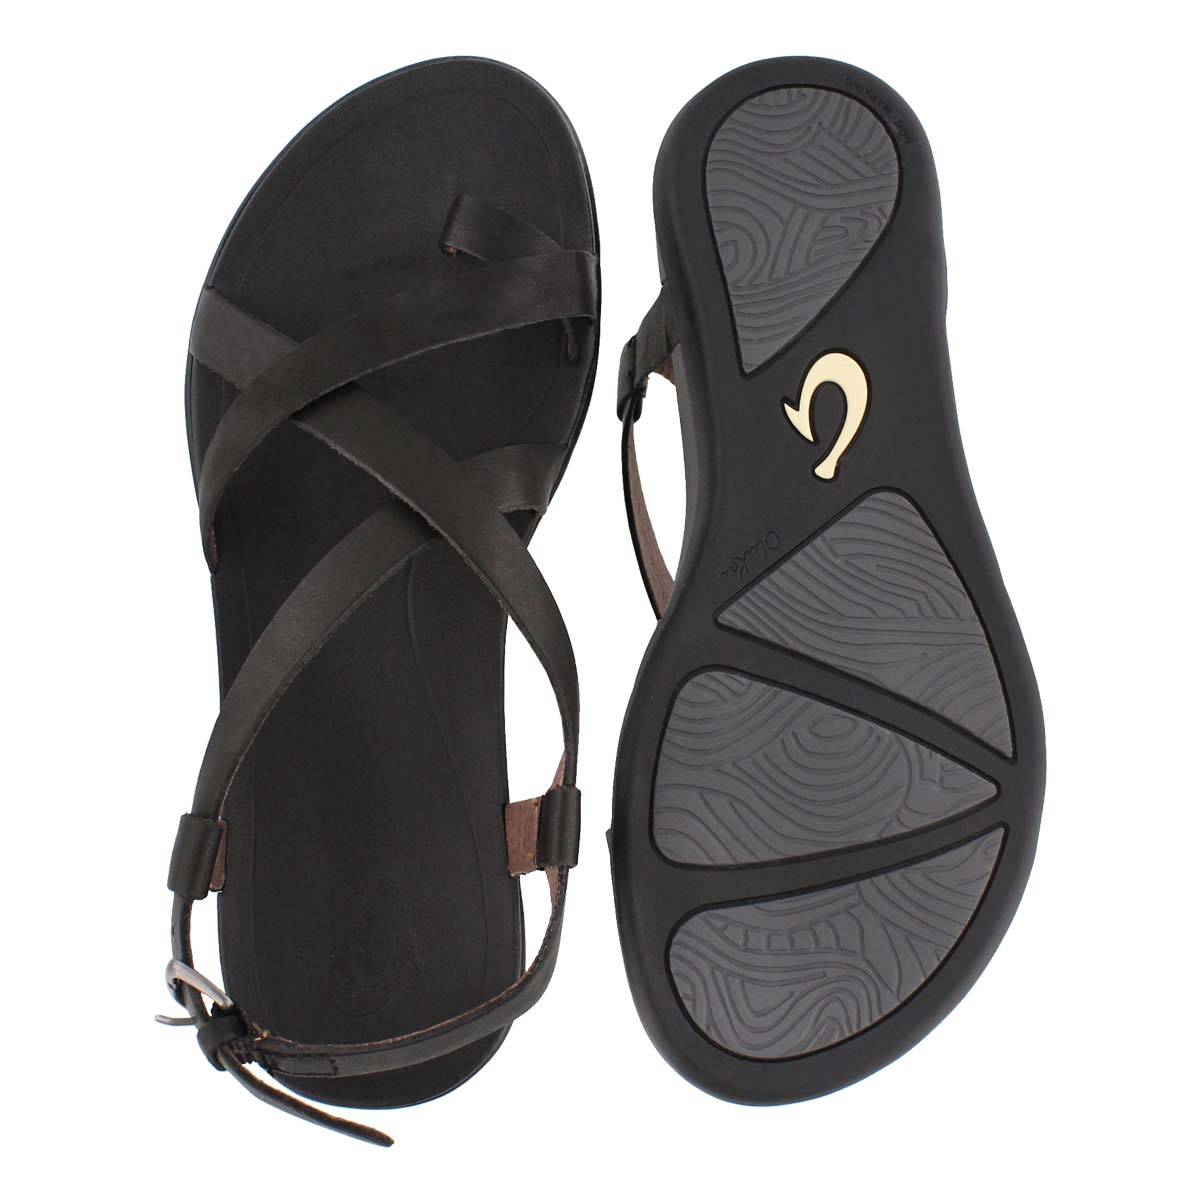 Lds Upena blk/blk toe loop casual sandal